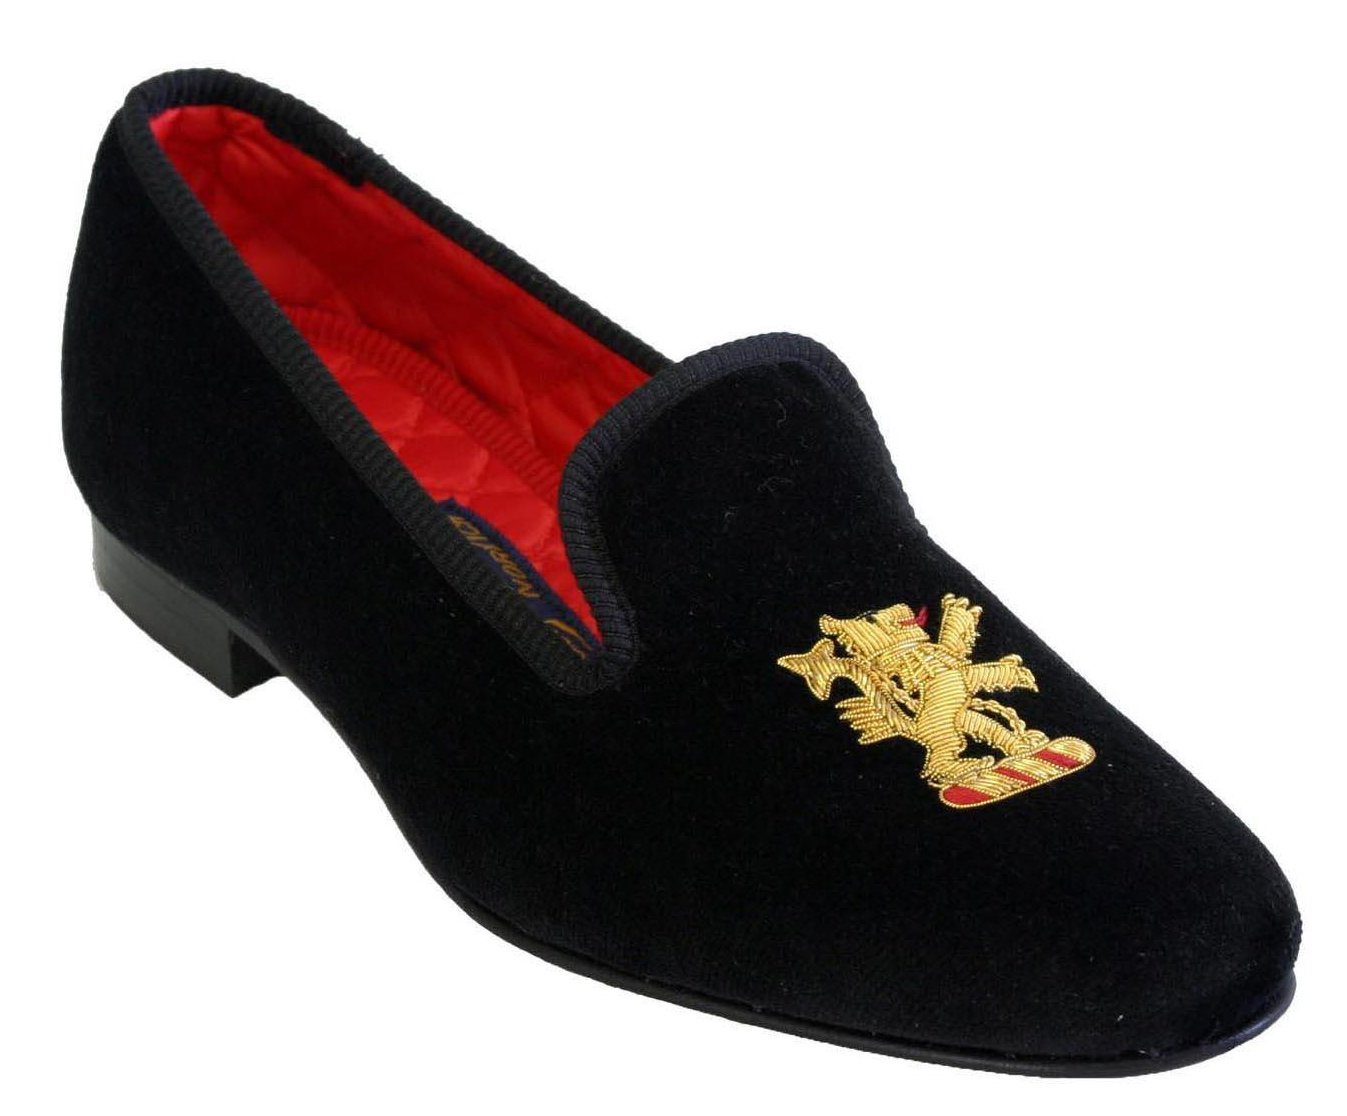 a9fa0429f2149 Spotlight: The Albert Slipper | The Black Tie Blog